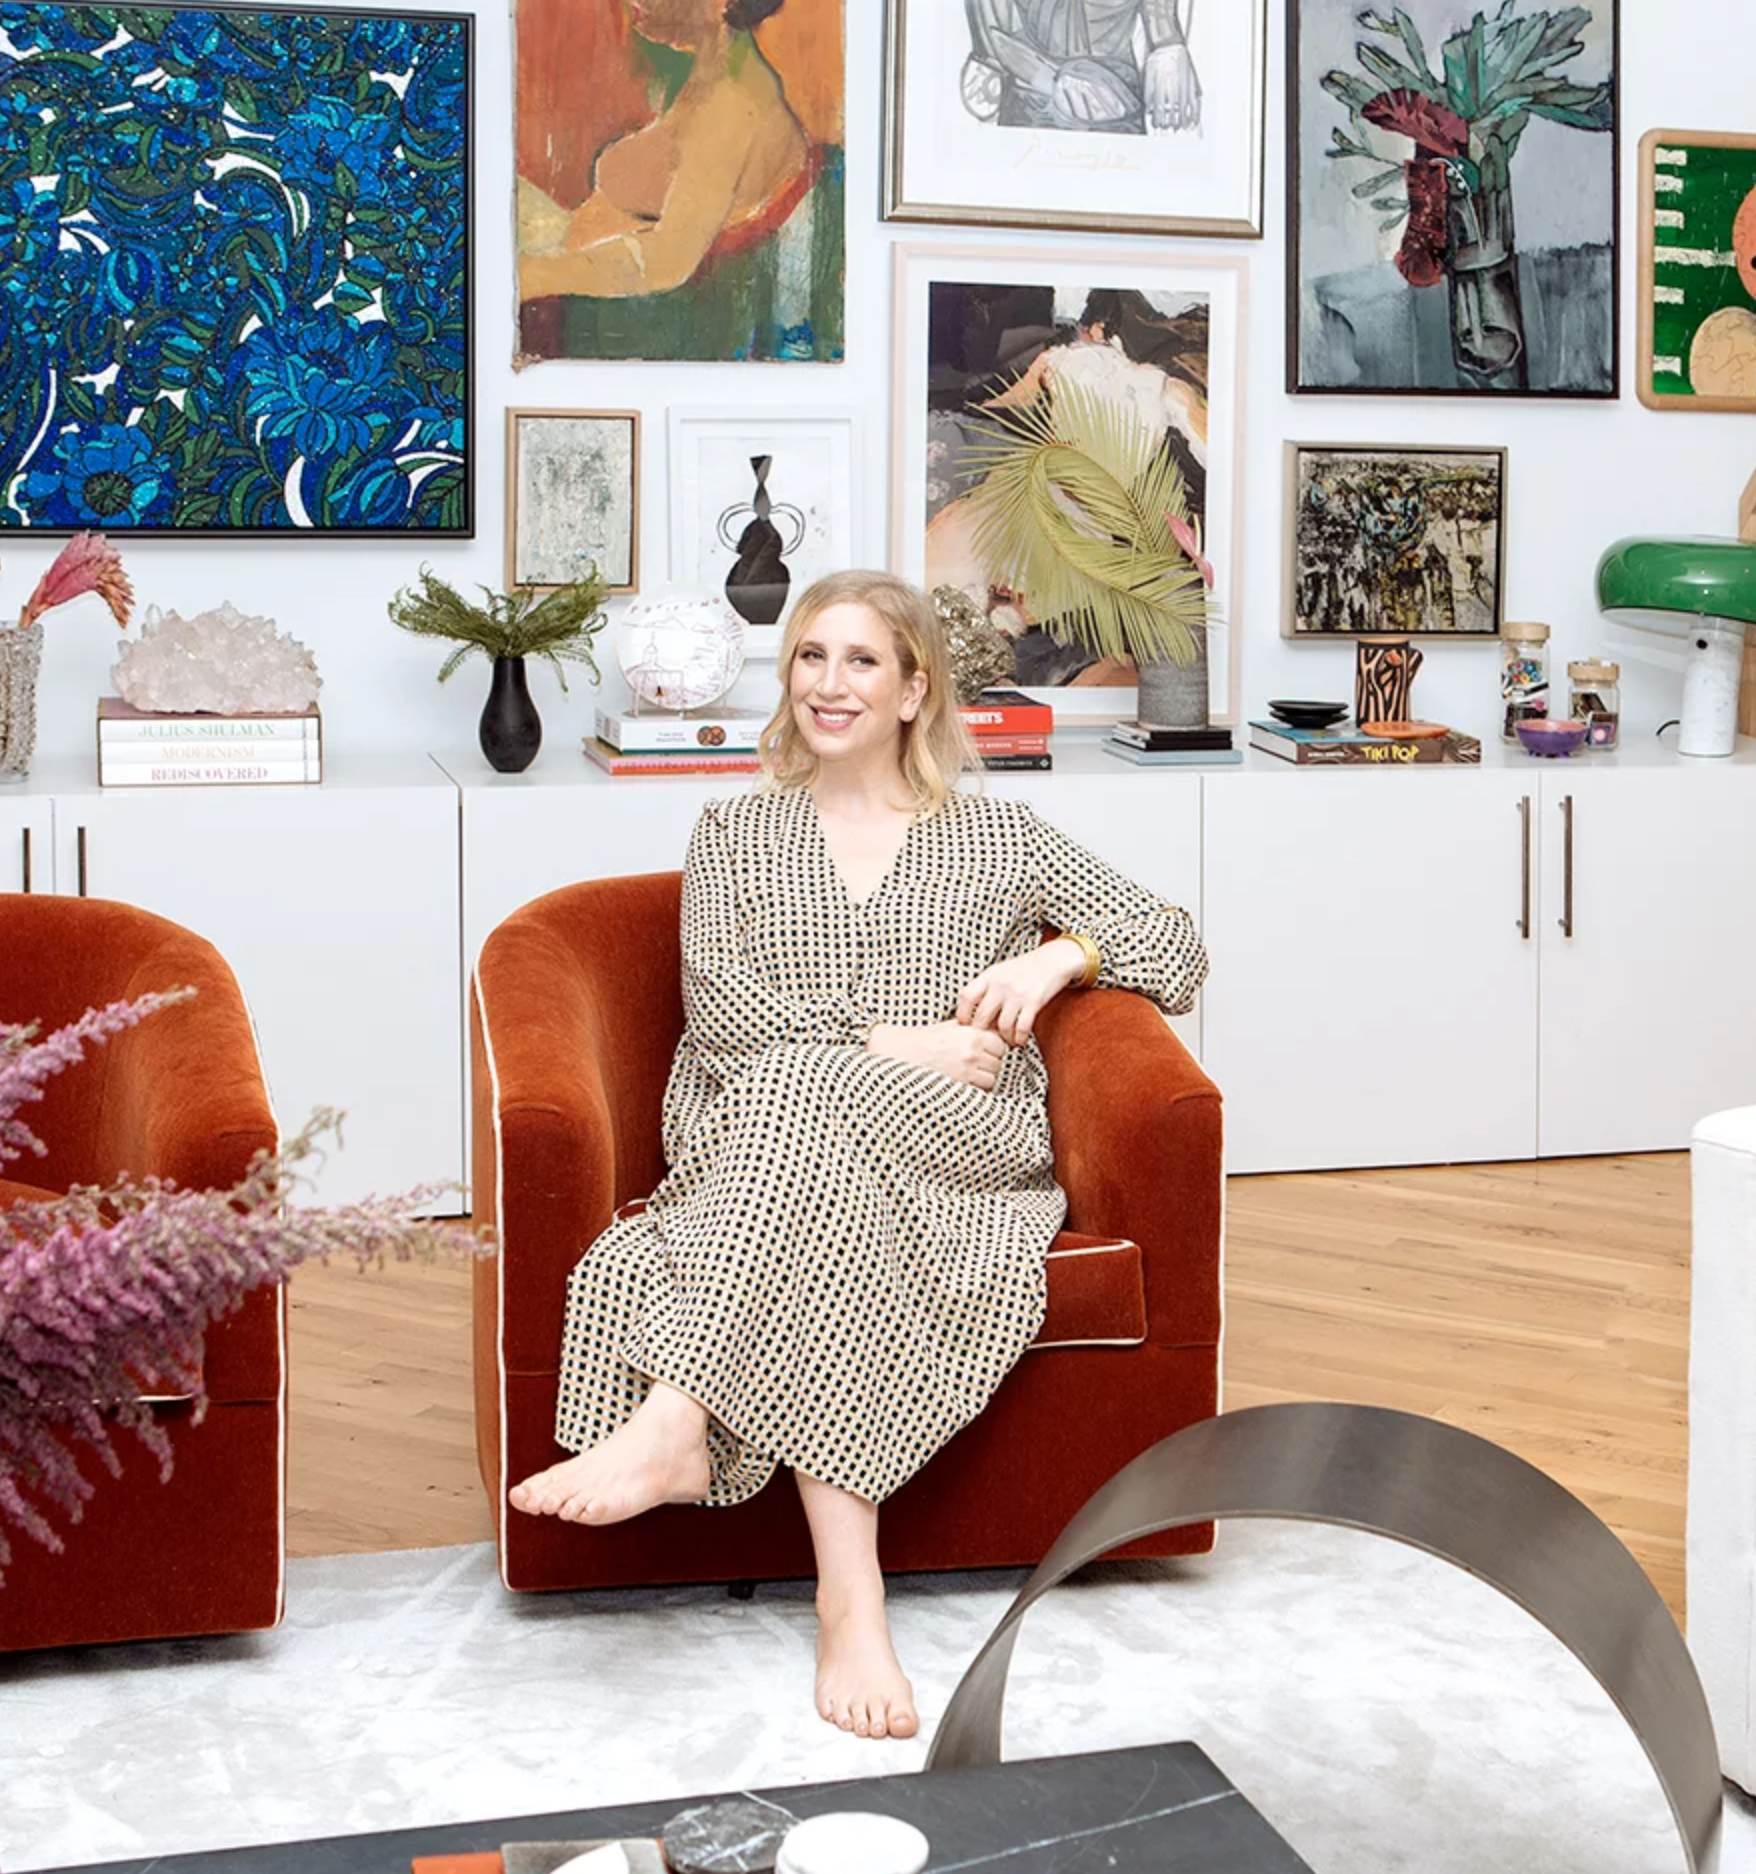 5 Swoon-Worthy Things with Tali Roth